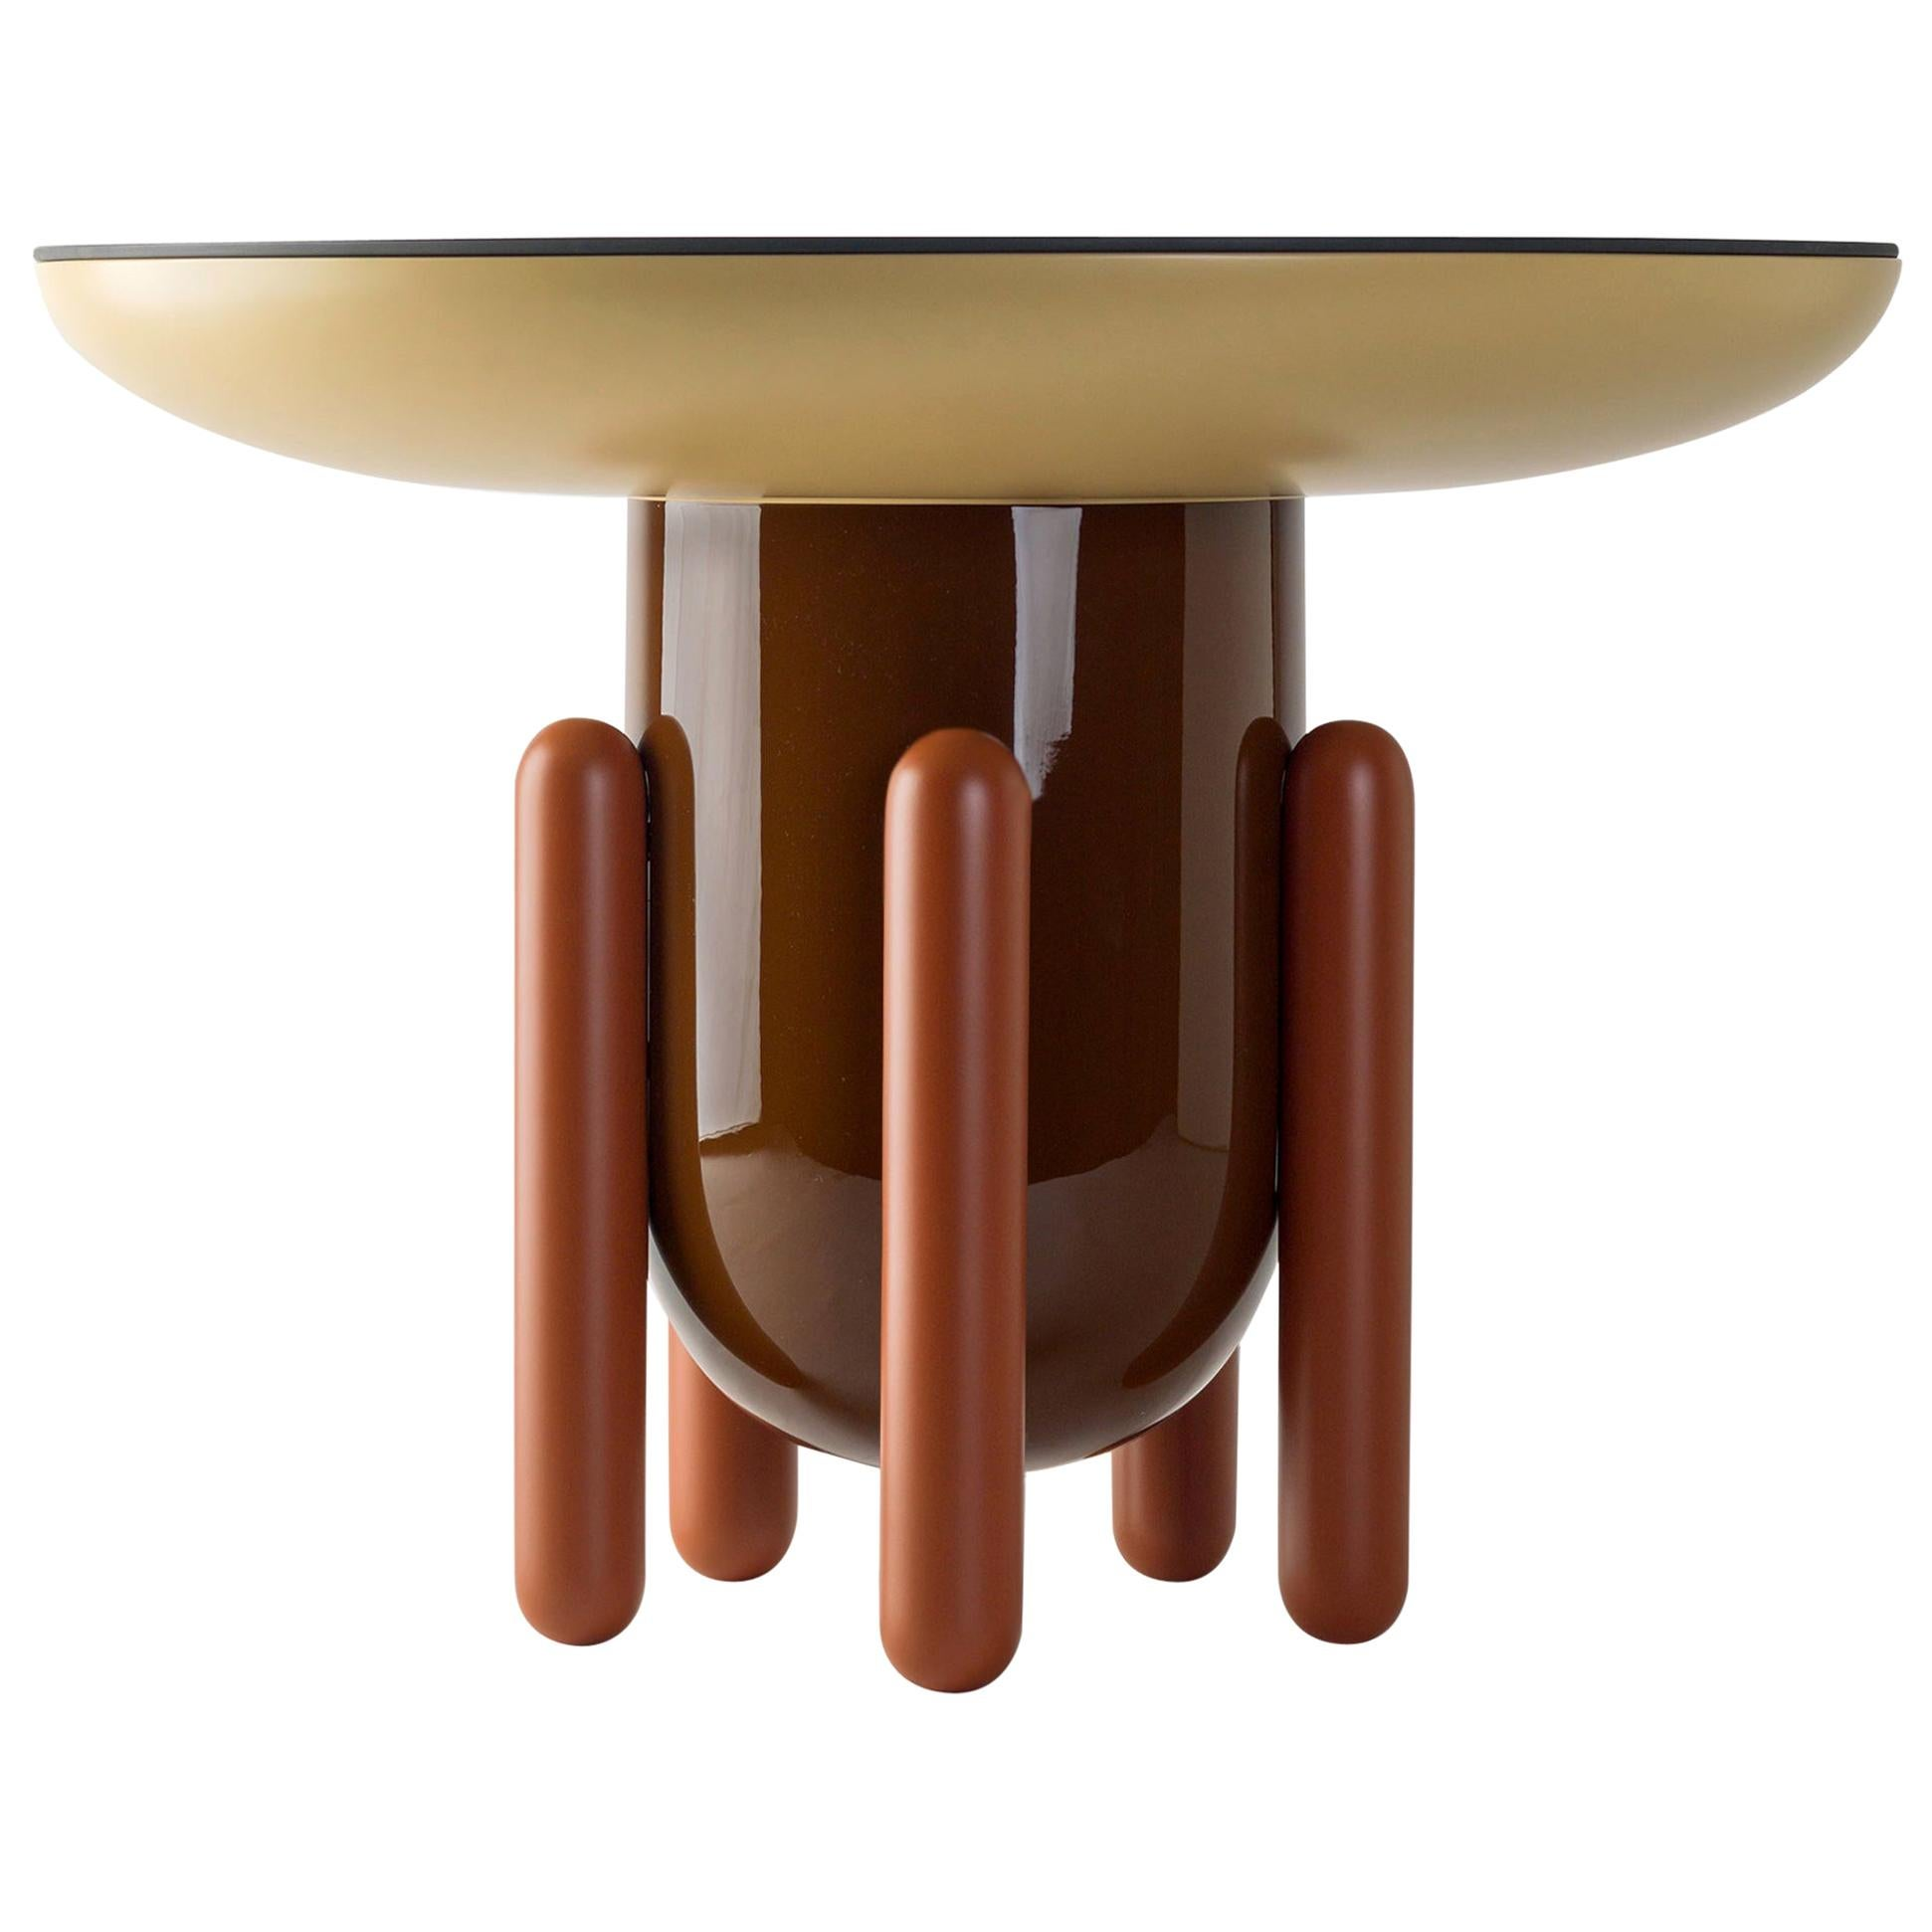 Jaime Hayon Multi-Color Contemporary Explorer #02 Table by BD Barcelona